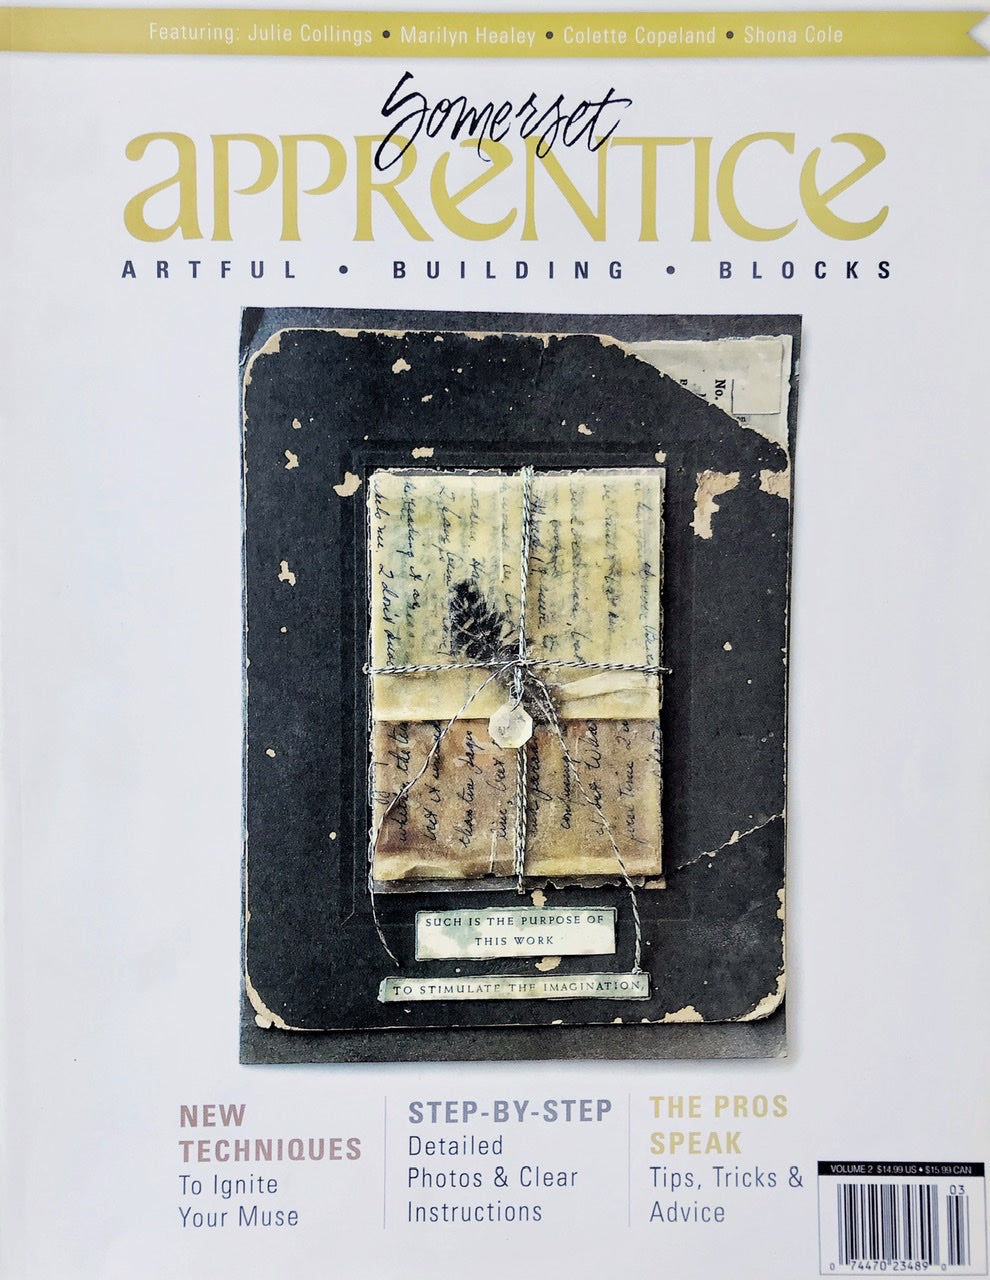 Somerset Apprentice March 2010 - Vol 2, Issue 1